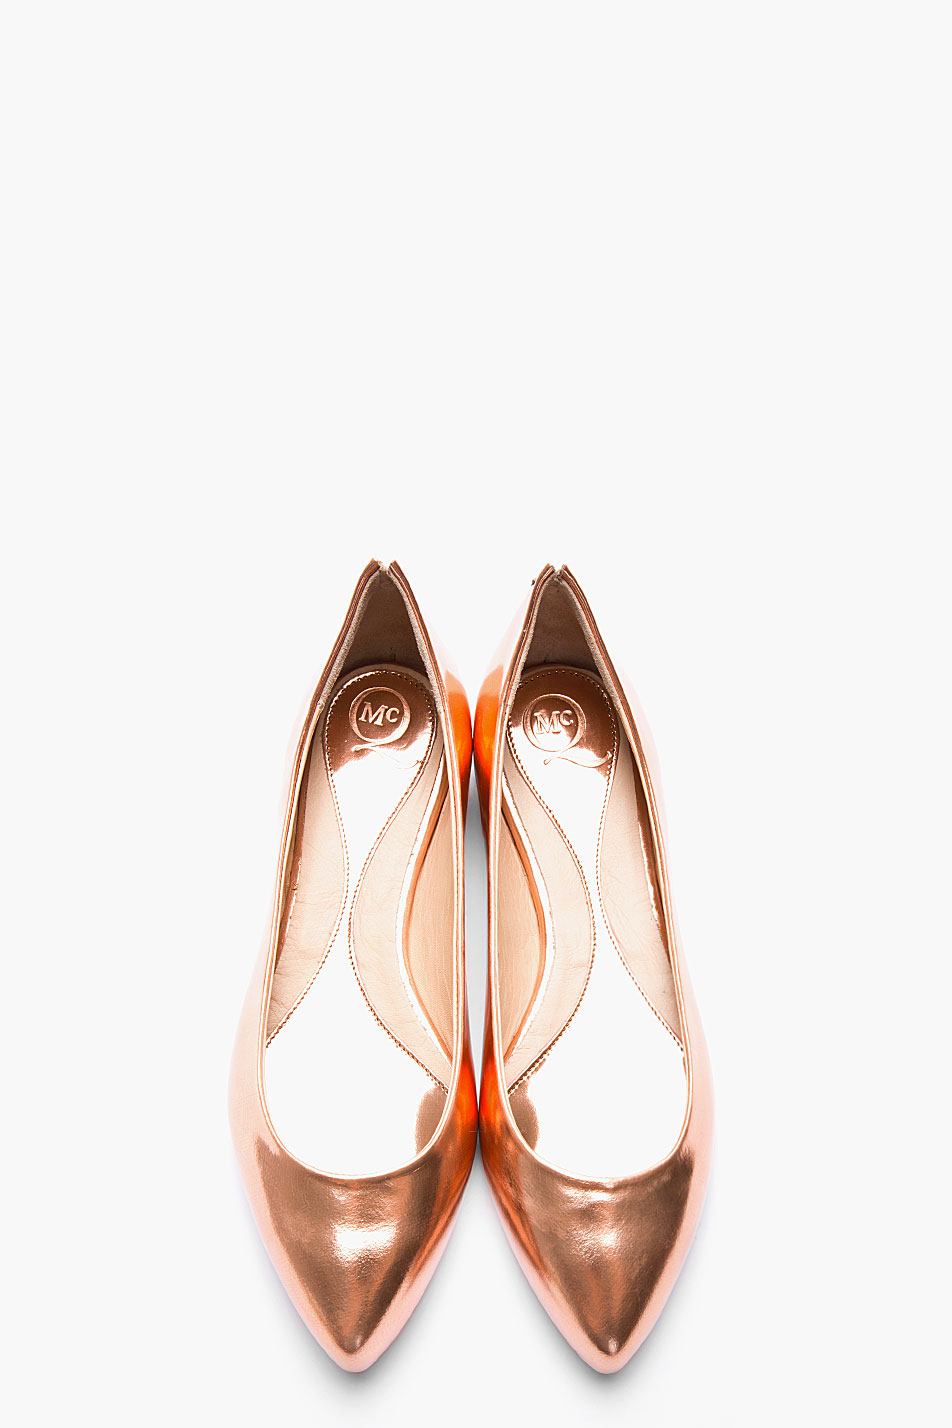 01862aeced42 Lyst - McQ Metallic Rose Gold Leather Pointy Toe Flats in Metallic